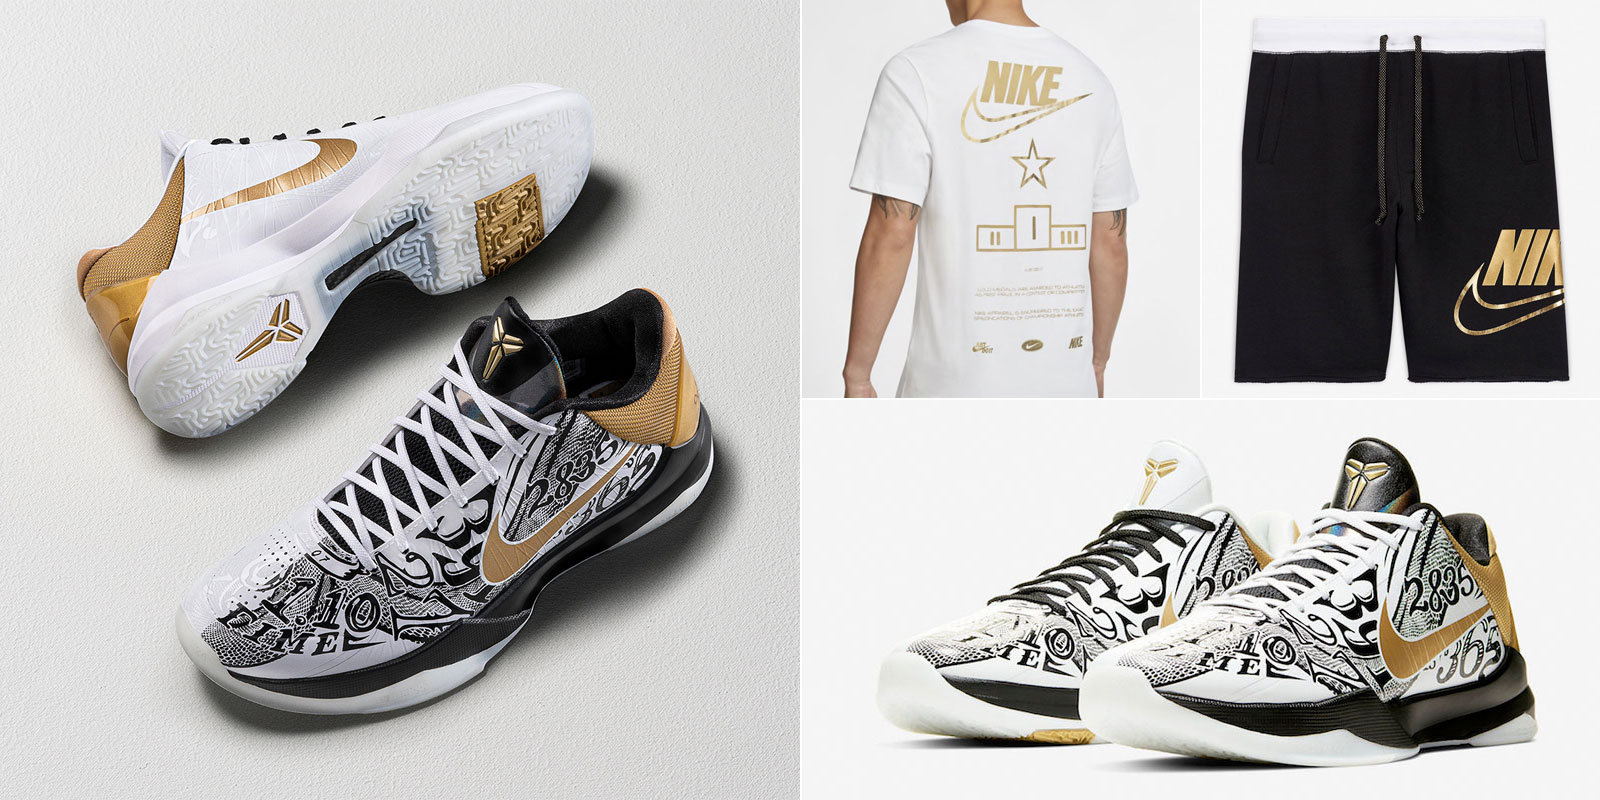 nike-kobe-protro-parade-big-stage-outfits